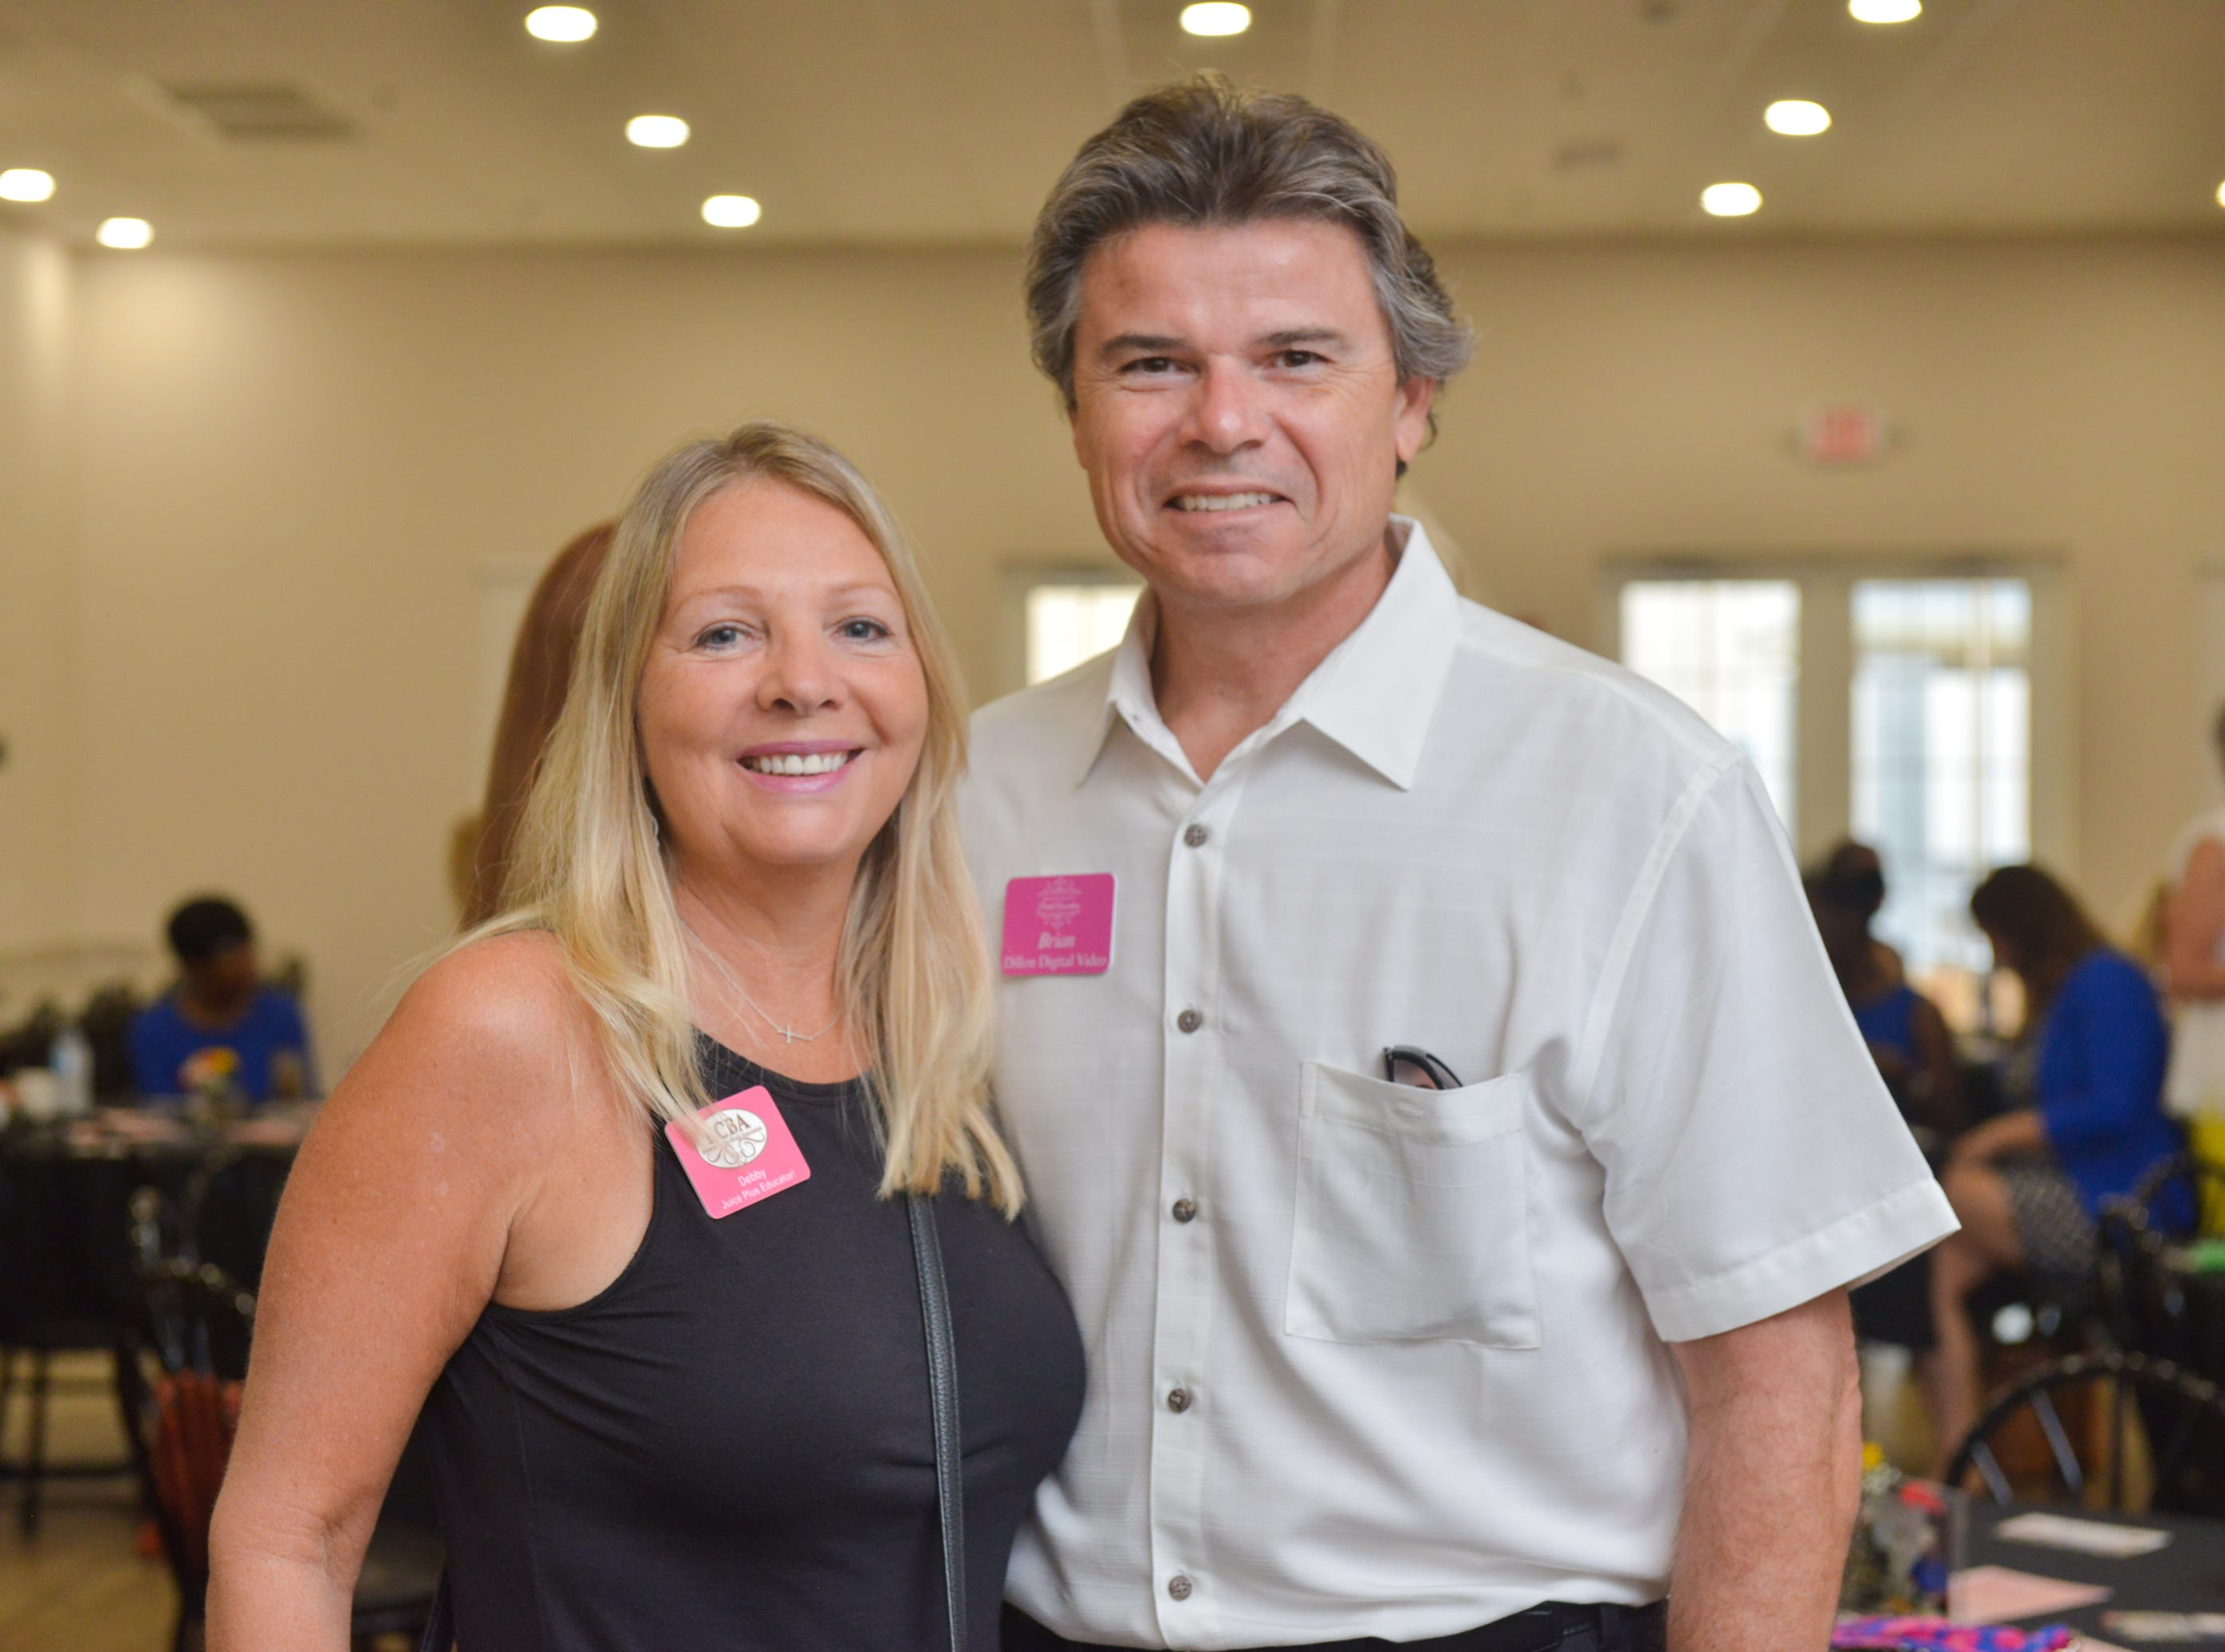 Debbie Dillon and Brian Dillon during the Women of Excellence Gathering at Promise in Brevard sponsored by the Melbourne Regional Chamber.